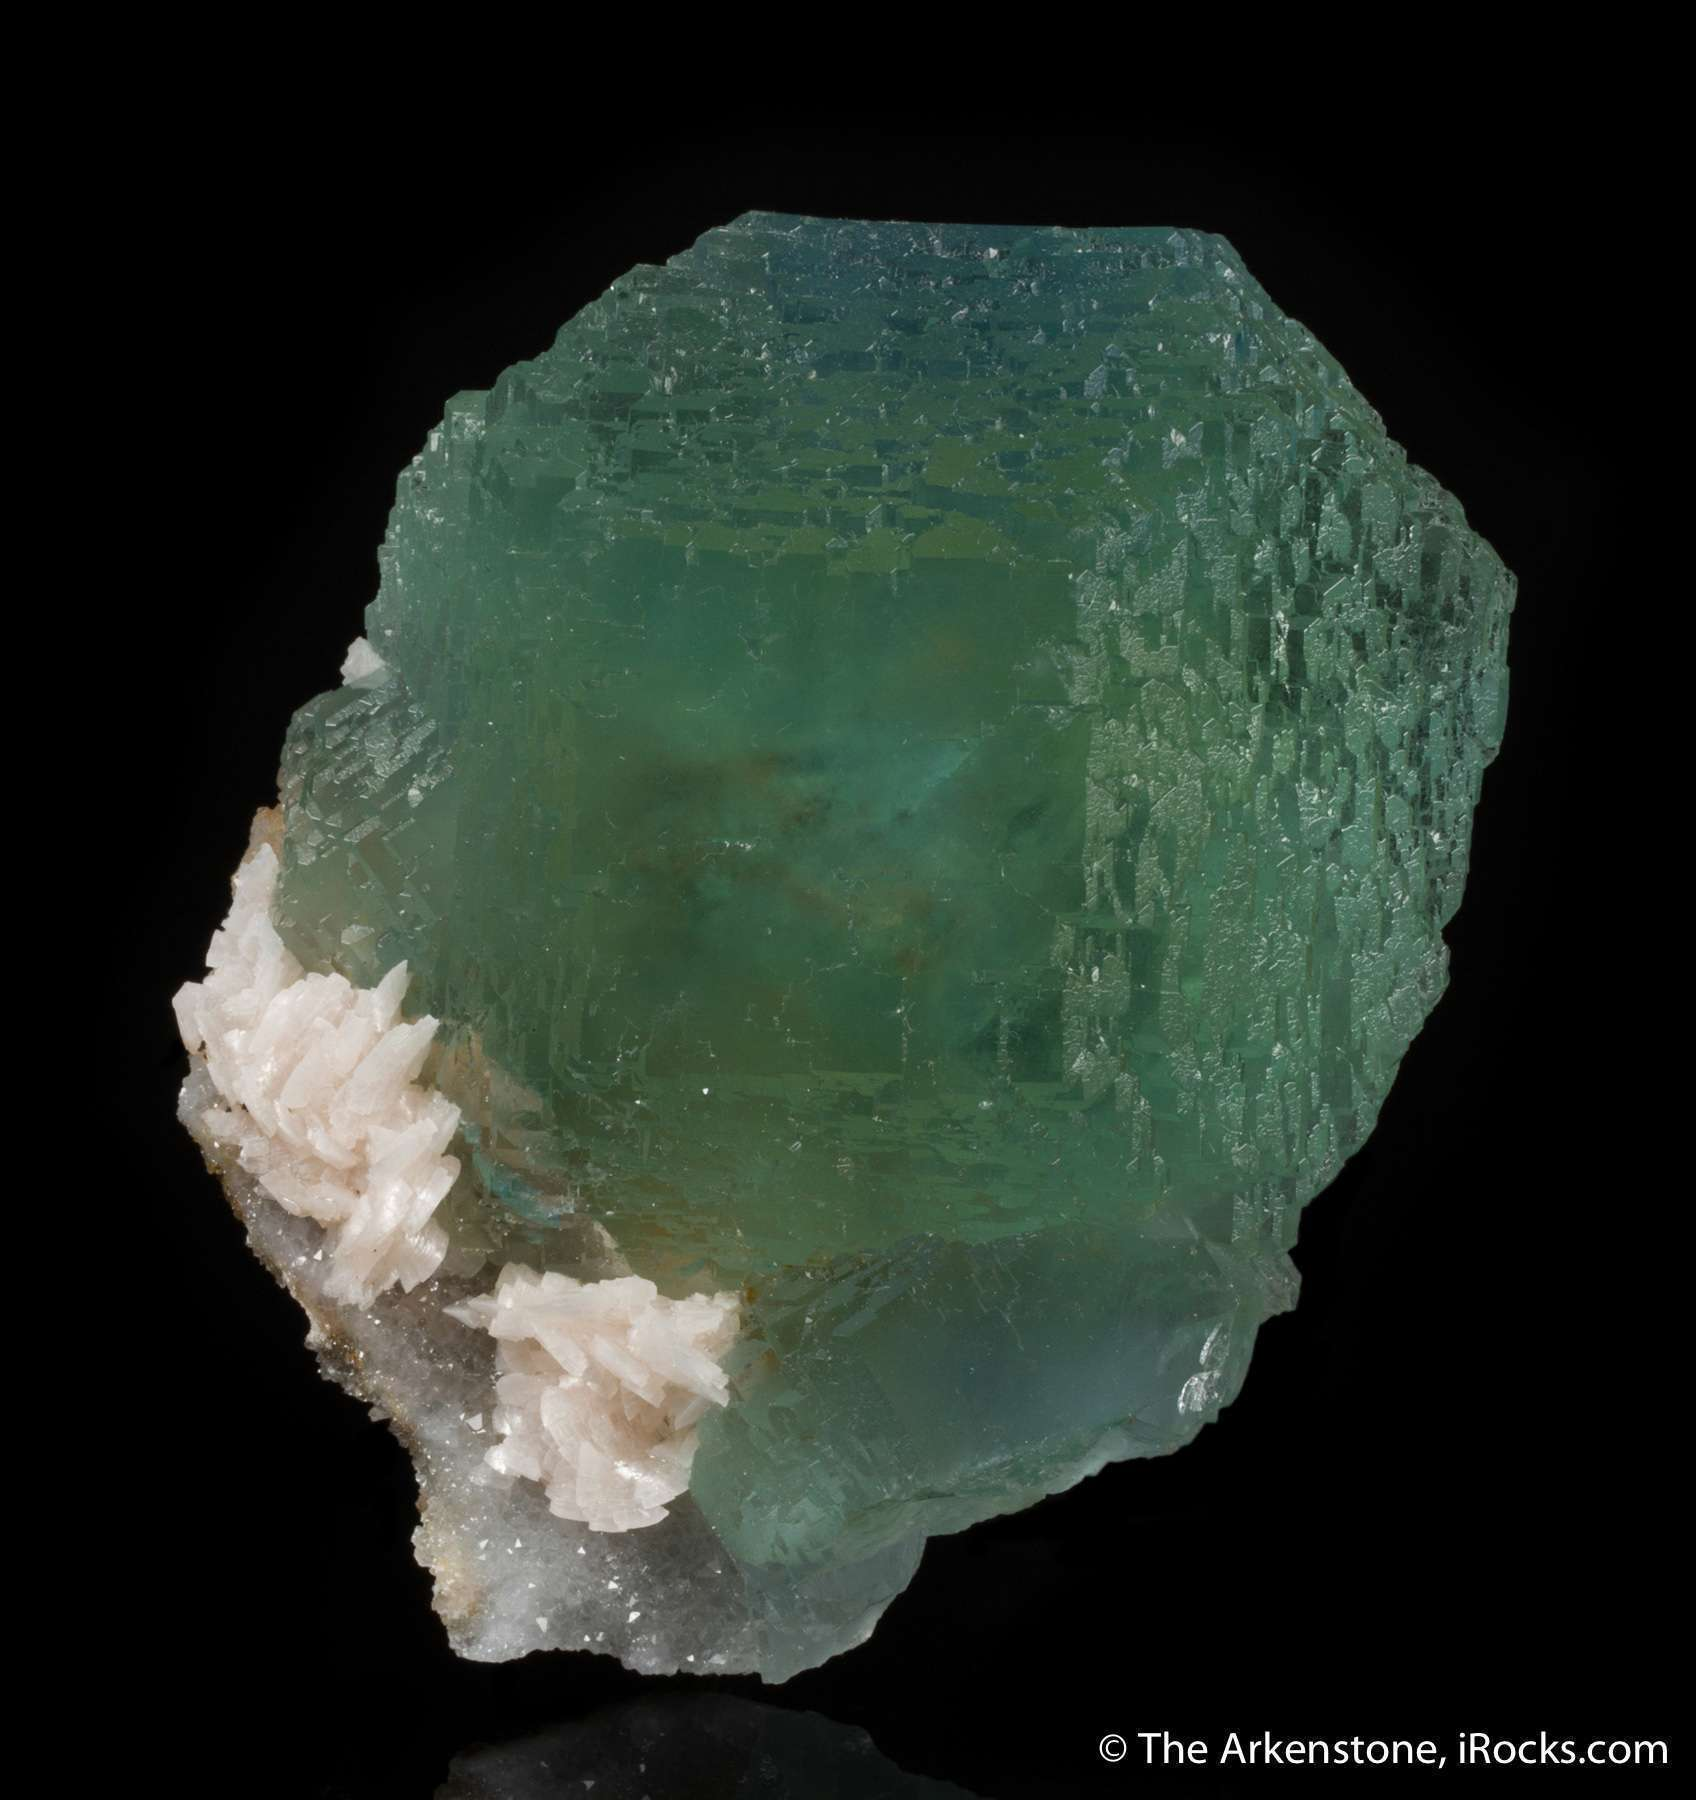 This large glowing green cuboctahedron lustrous gemmy The emerald